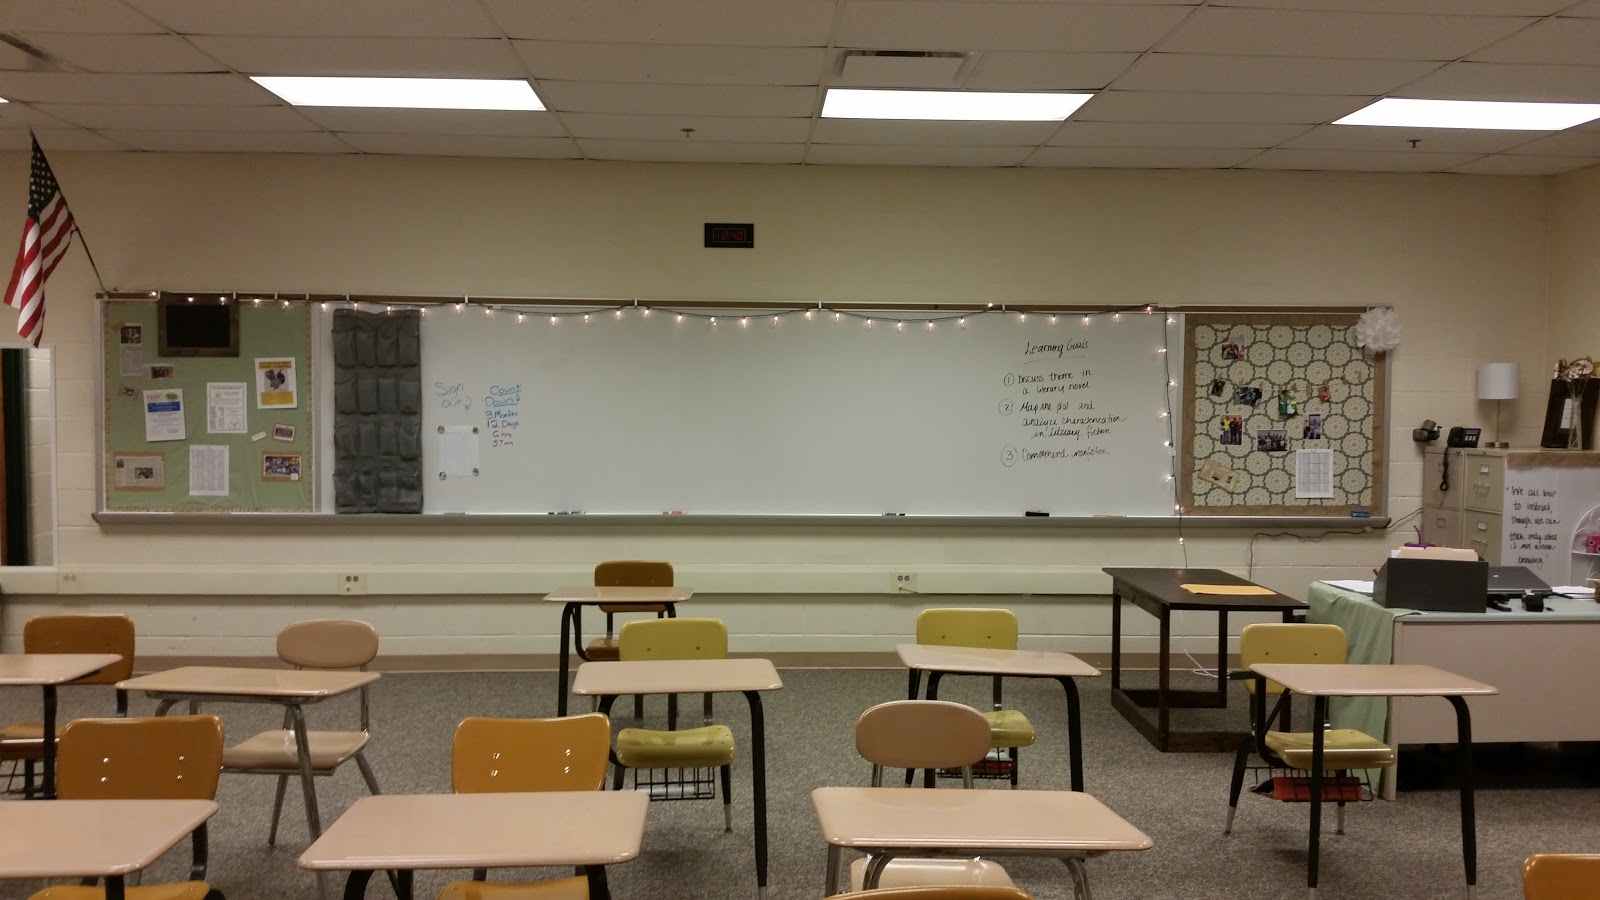 Why I Decorated My High School Classroom